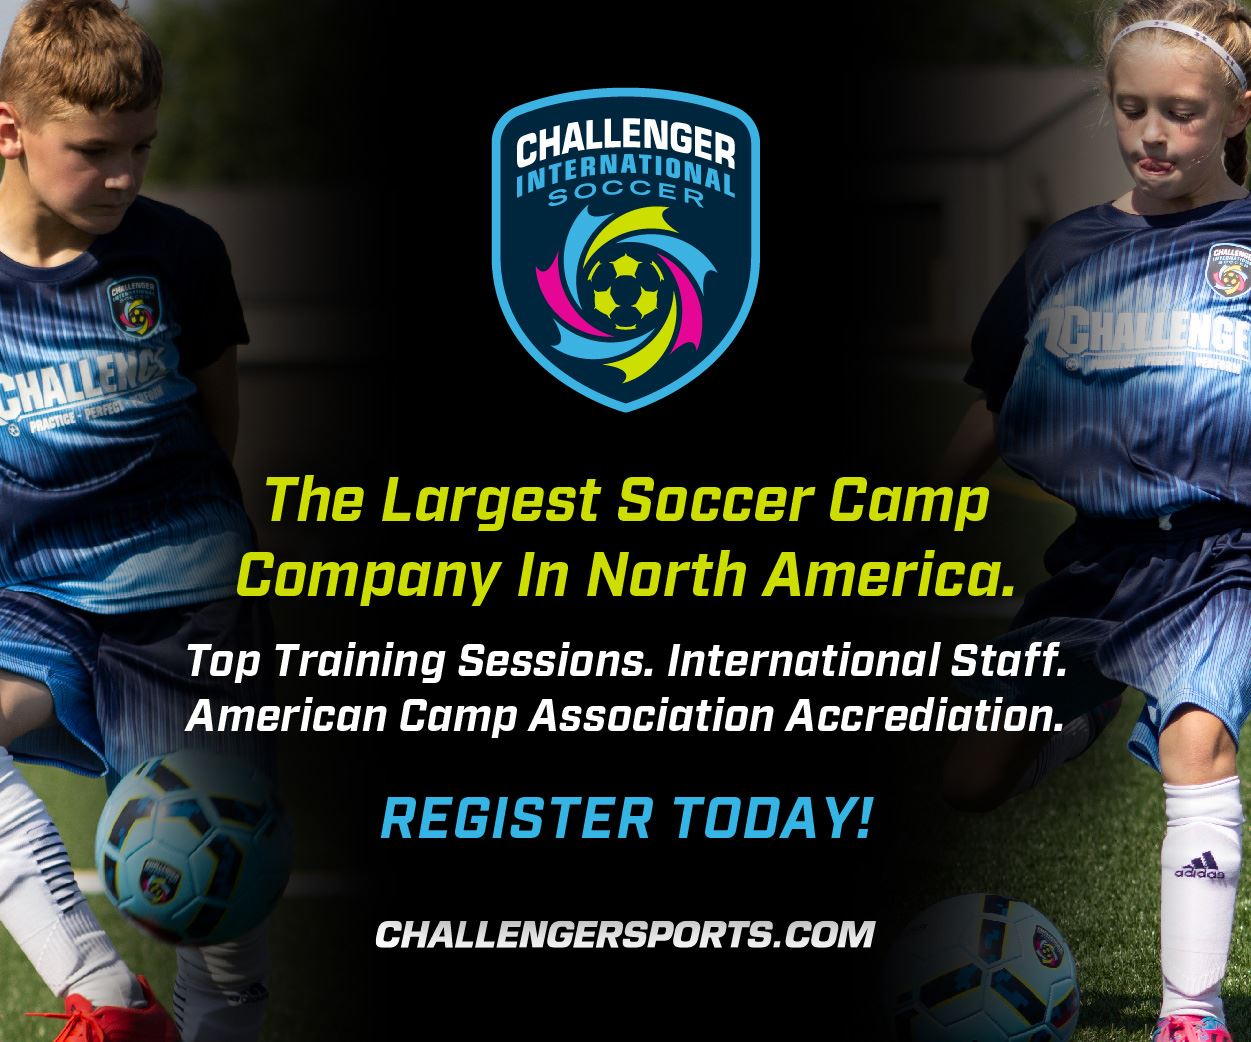 Challenger Soccer Ad Image